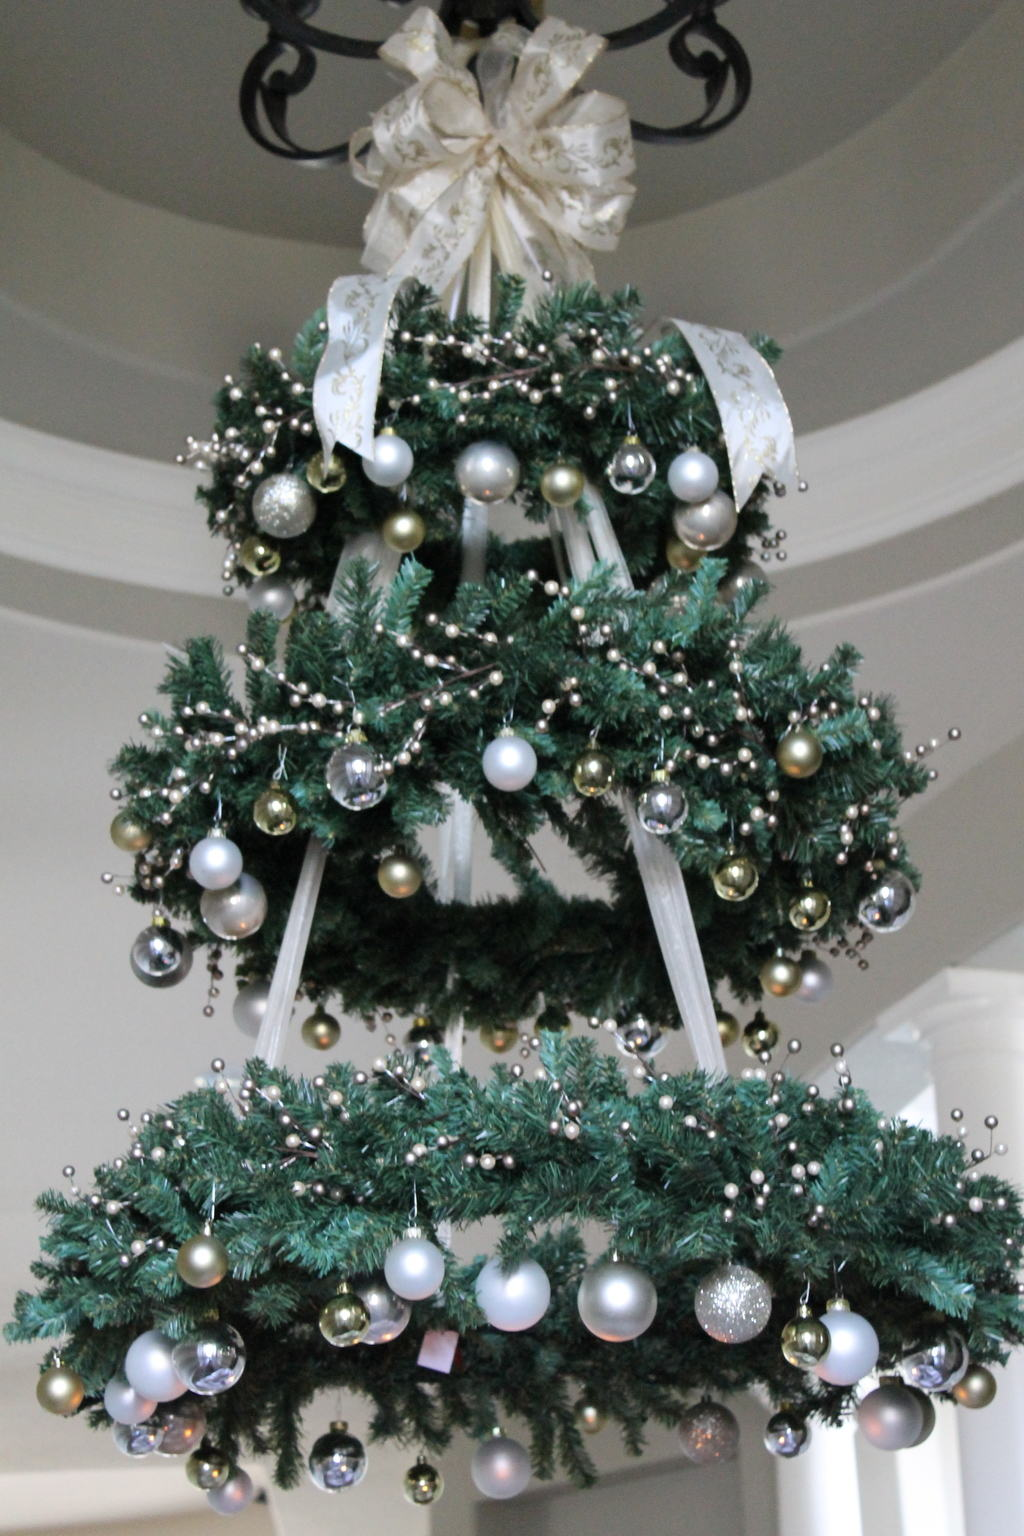 Unique Trees for the Holidays